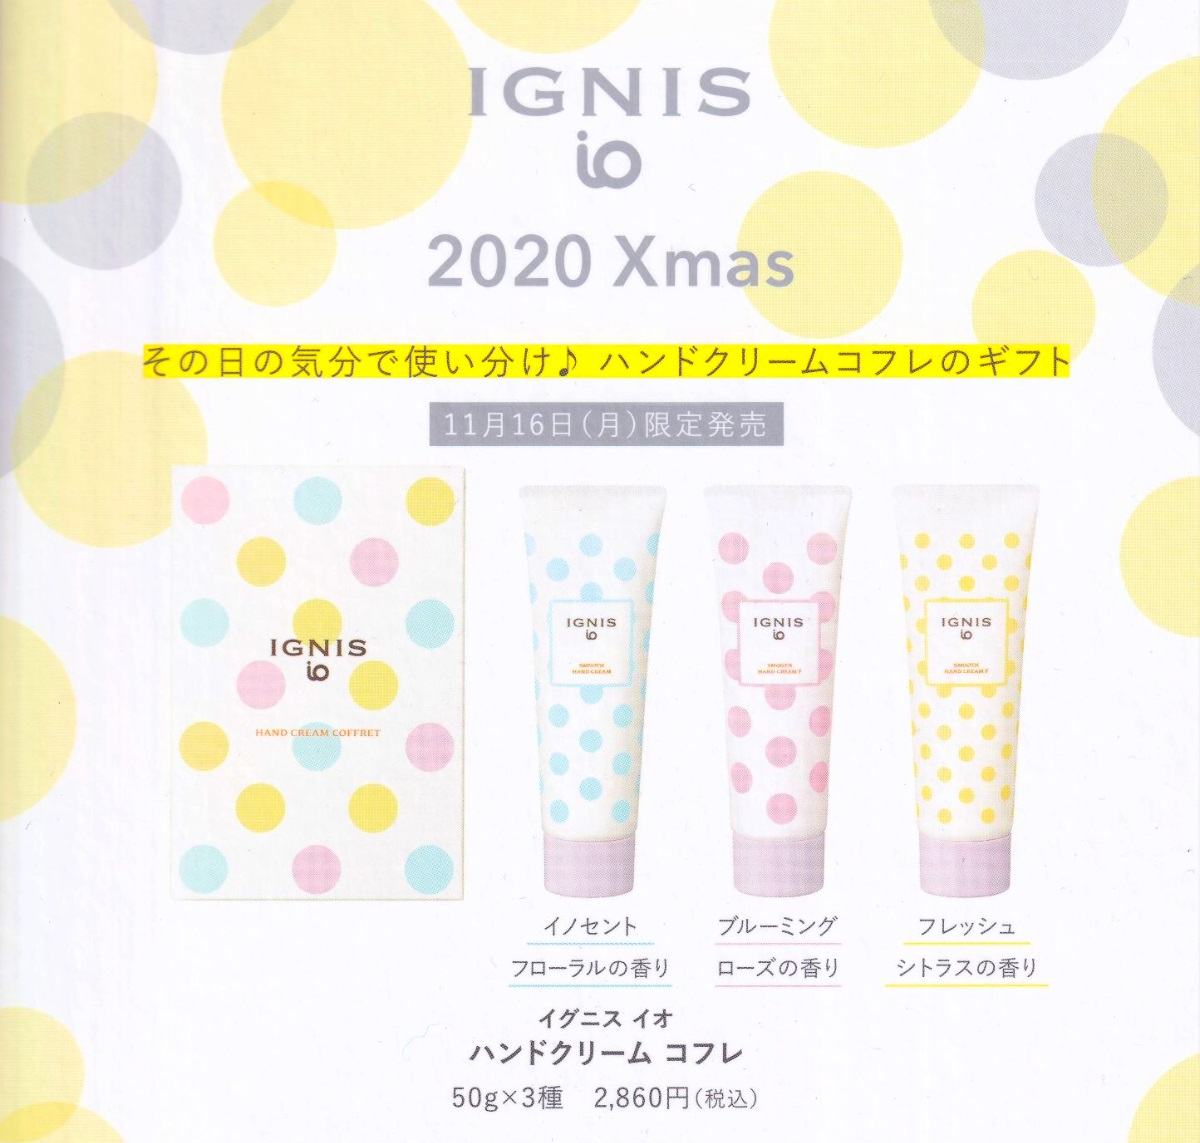 【IGNIS iO】<br>限定商品のご案内